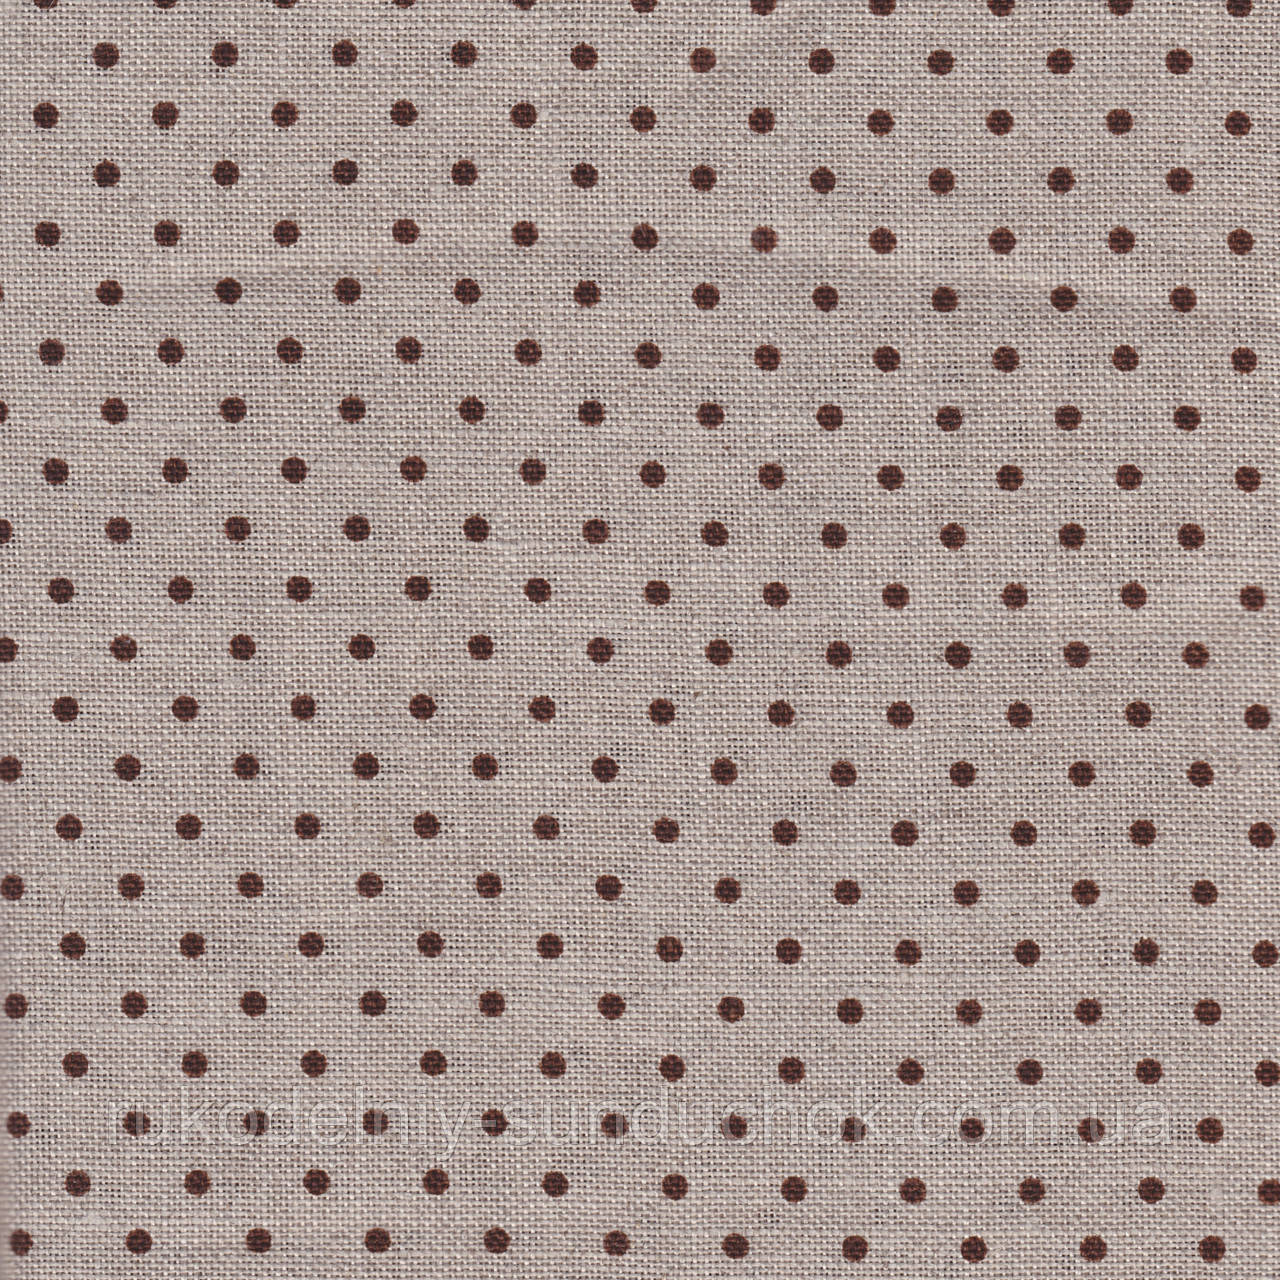 Ткань равномерного переплетения Zweigart Belfast 32 ct. Petit Point 3609/5392 Raw linen/brown dots (цвет сырог